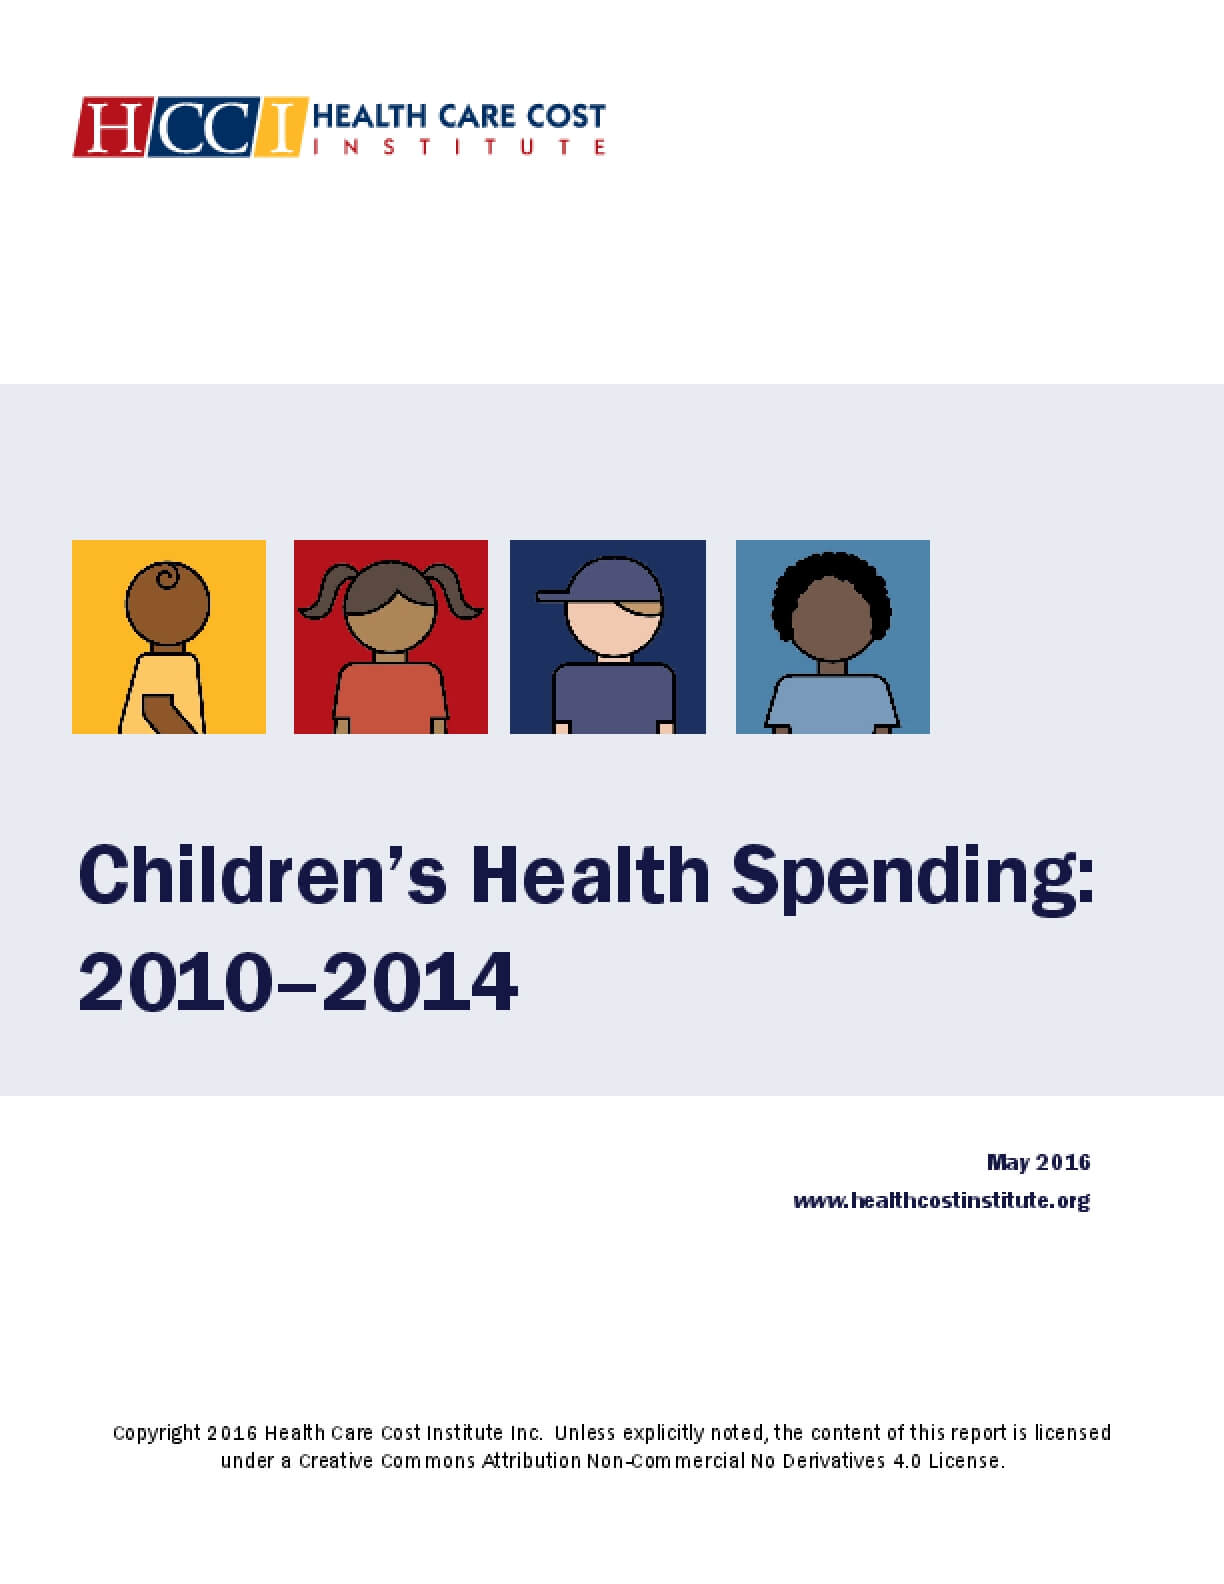 Children's Health Spending: 2010-2014